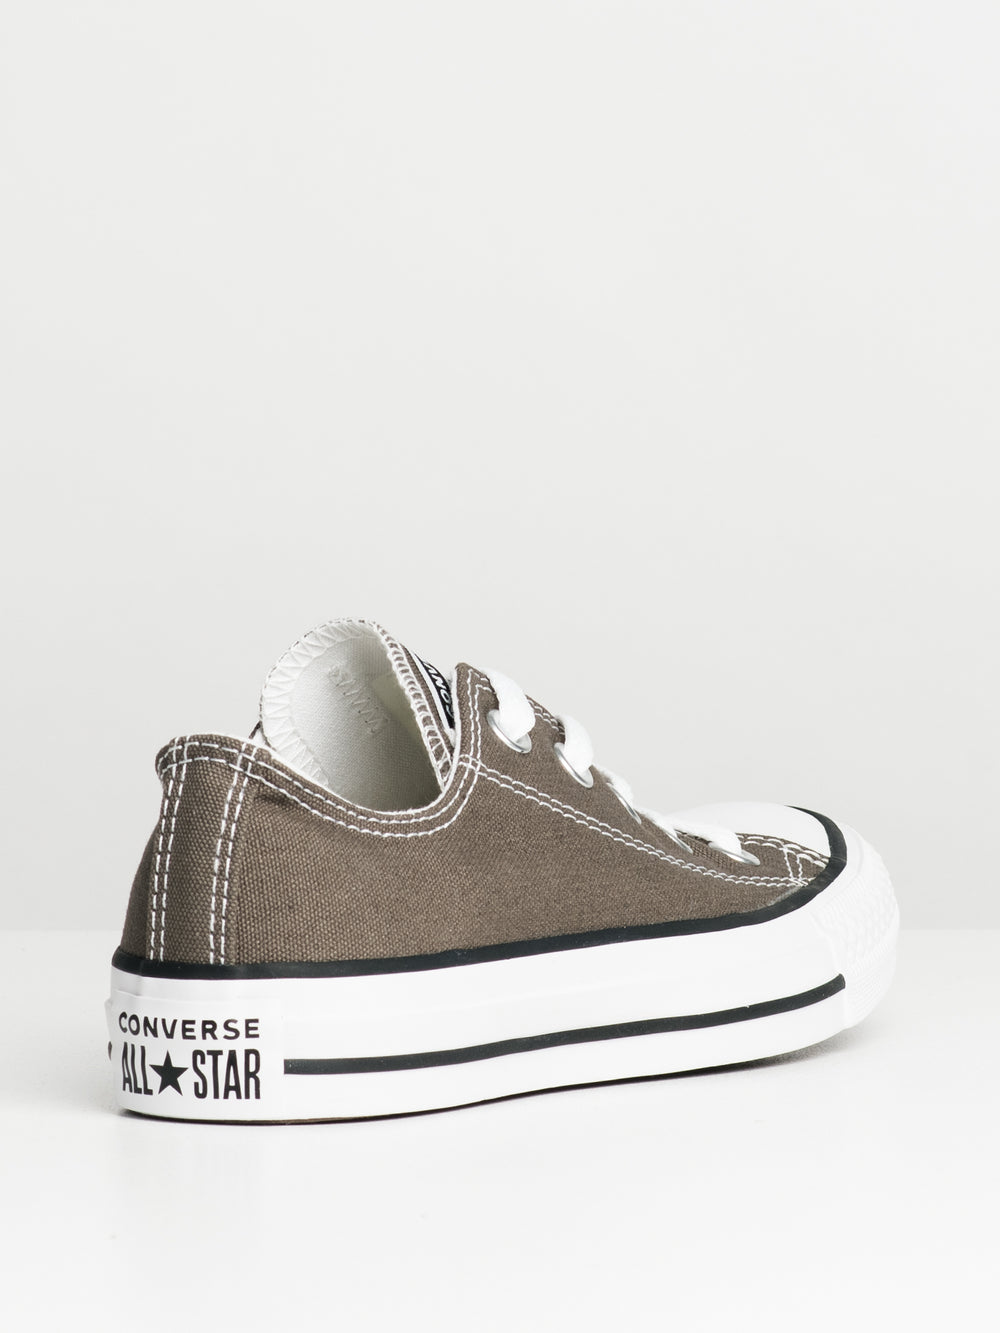 WOMENS CHUCKS OX CANVAS SHOES SNEAKER